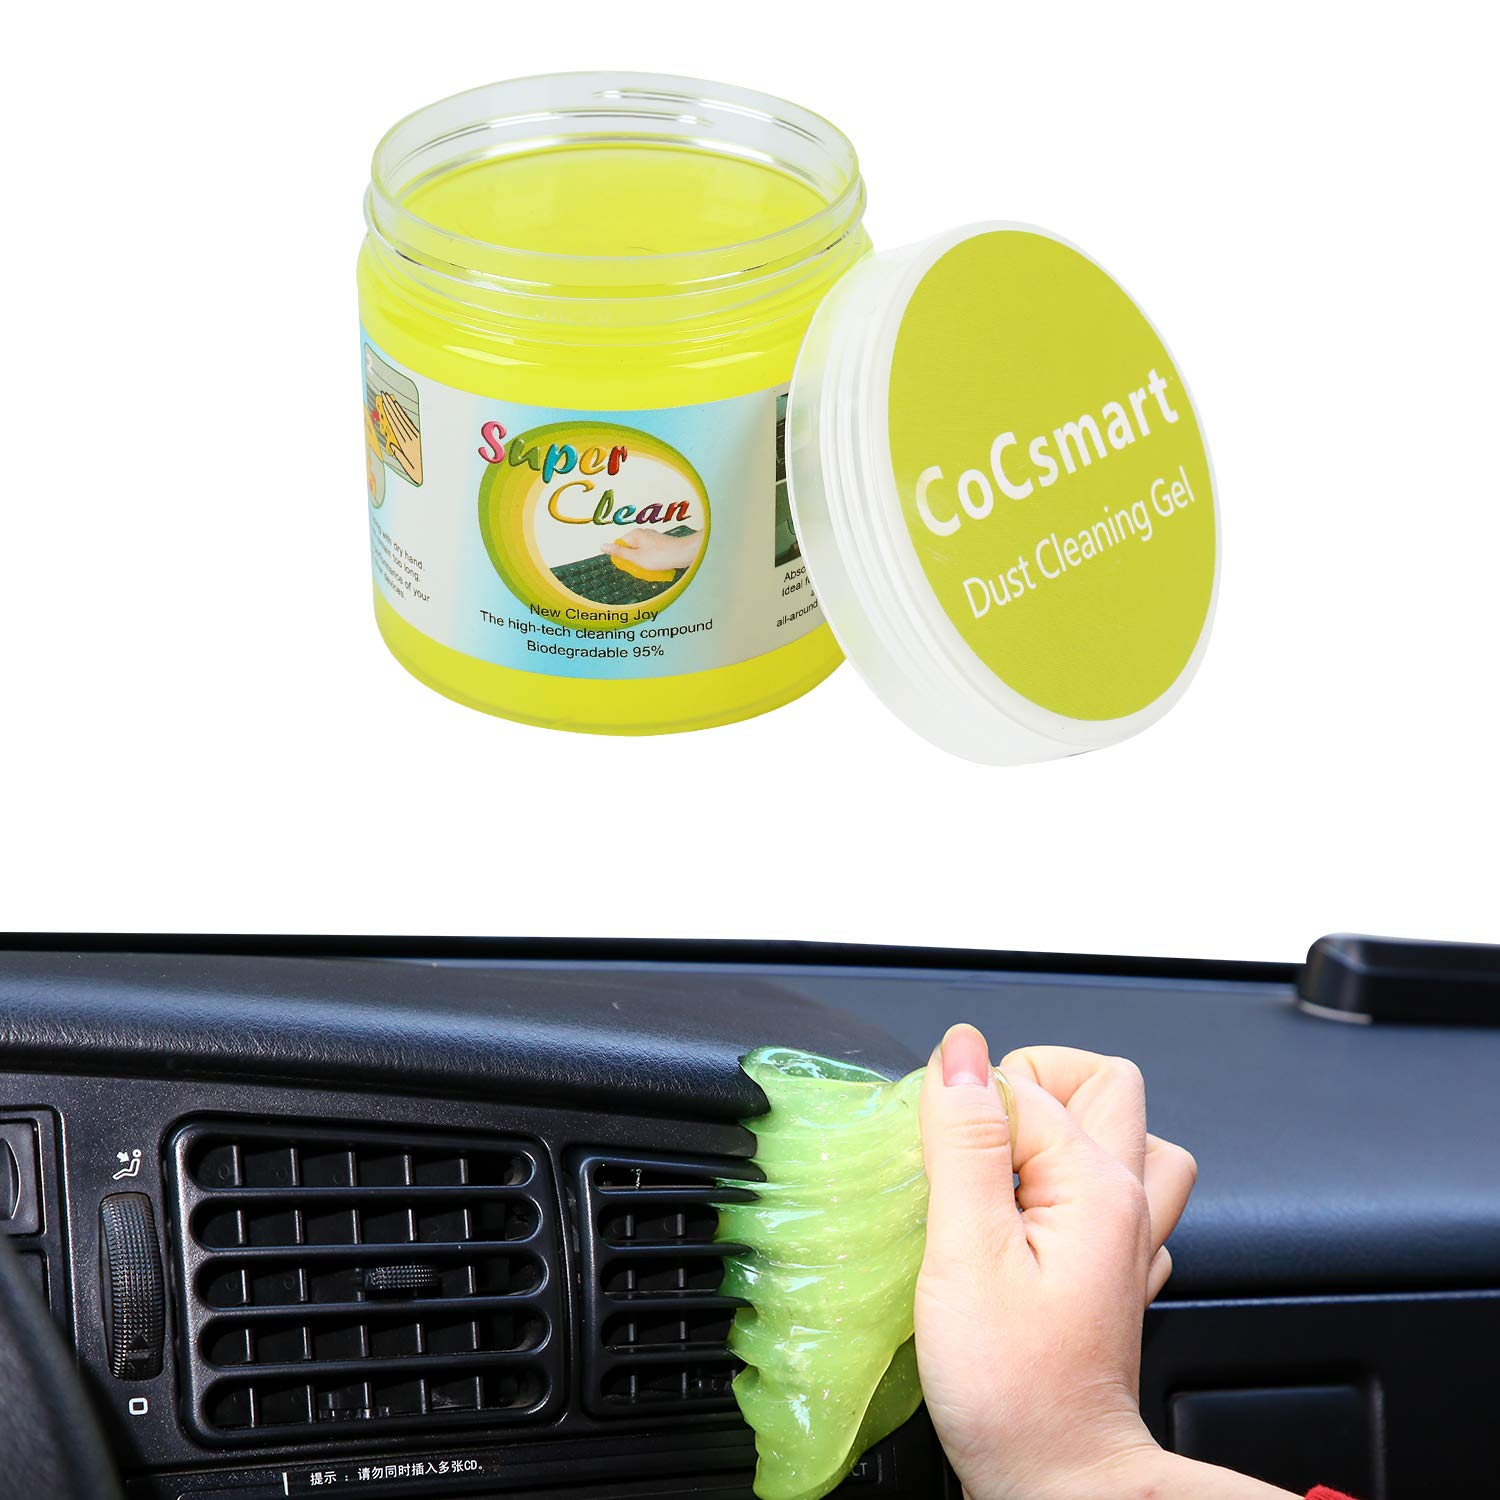 PESTON Car Cleaning Gel Universal Car Interior Detailing Slime Automotive Dust Air Vent Keyboard Cleaner Putty for Auto Laptop Home Office Reusable